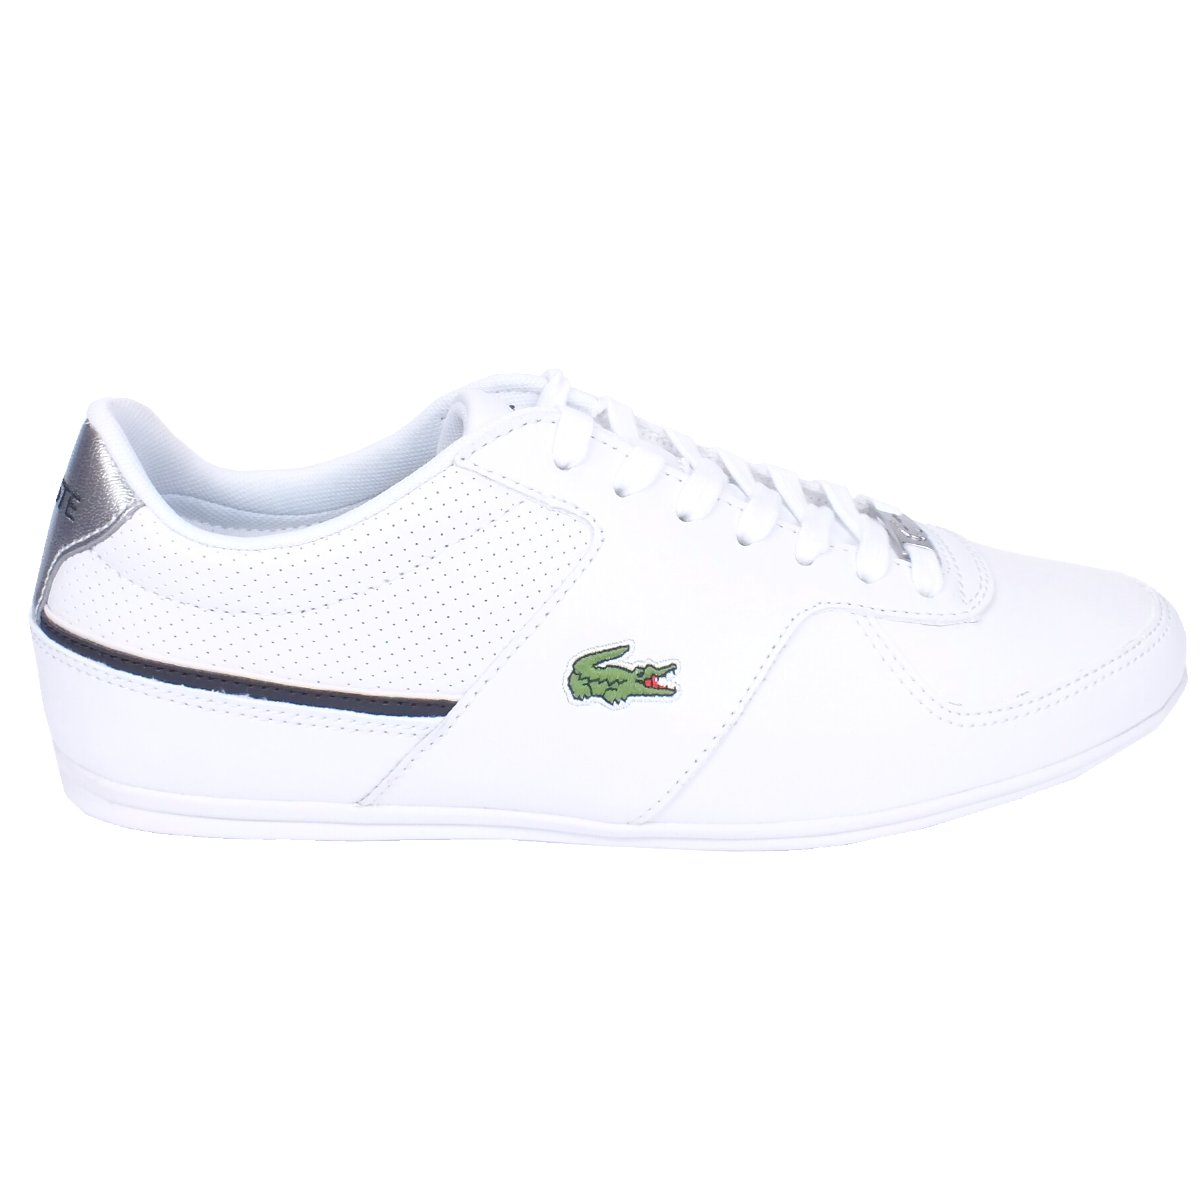 lacoste taloire sport slx schuhe turnschuhe sneaker leder herren wei. Black Bedroom Furniture Sets. Home Design Ideas